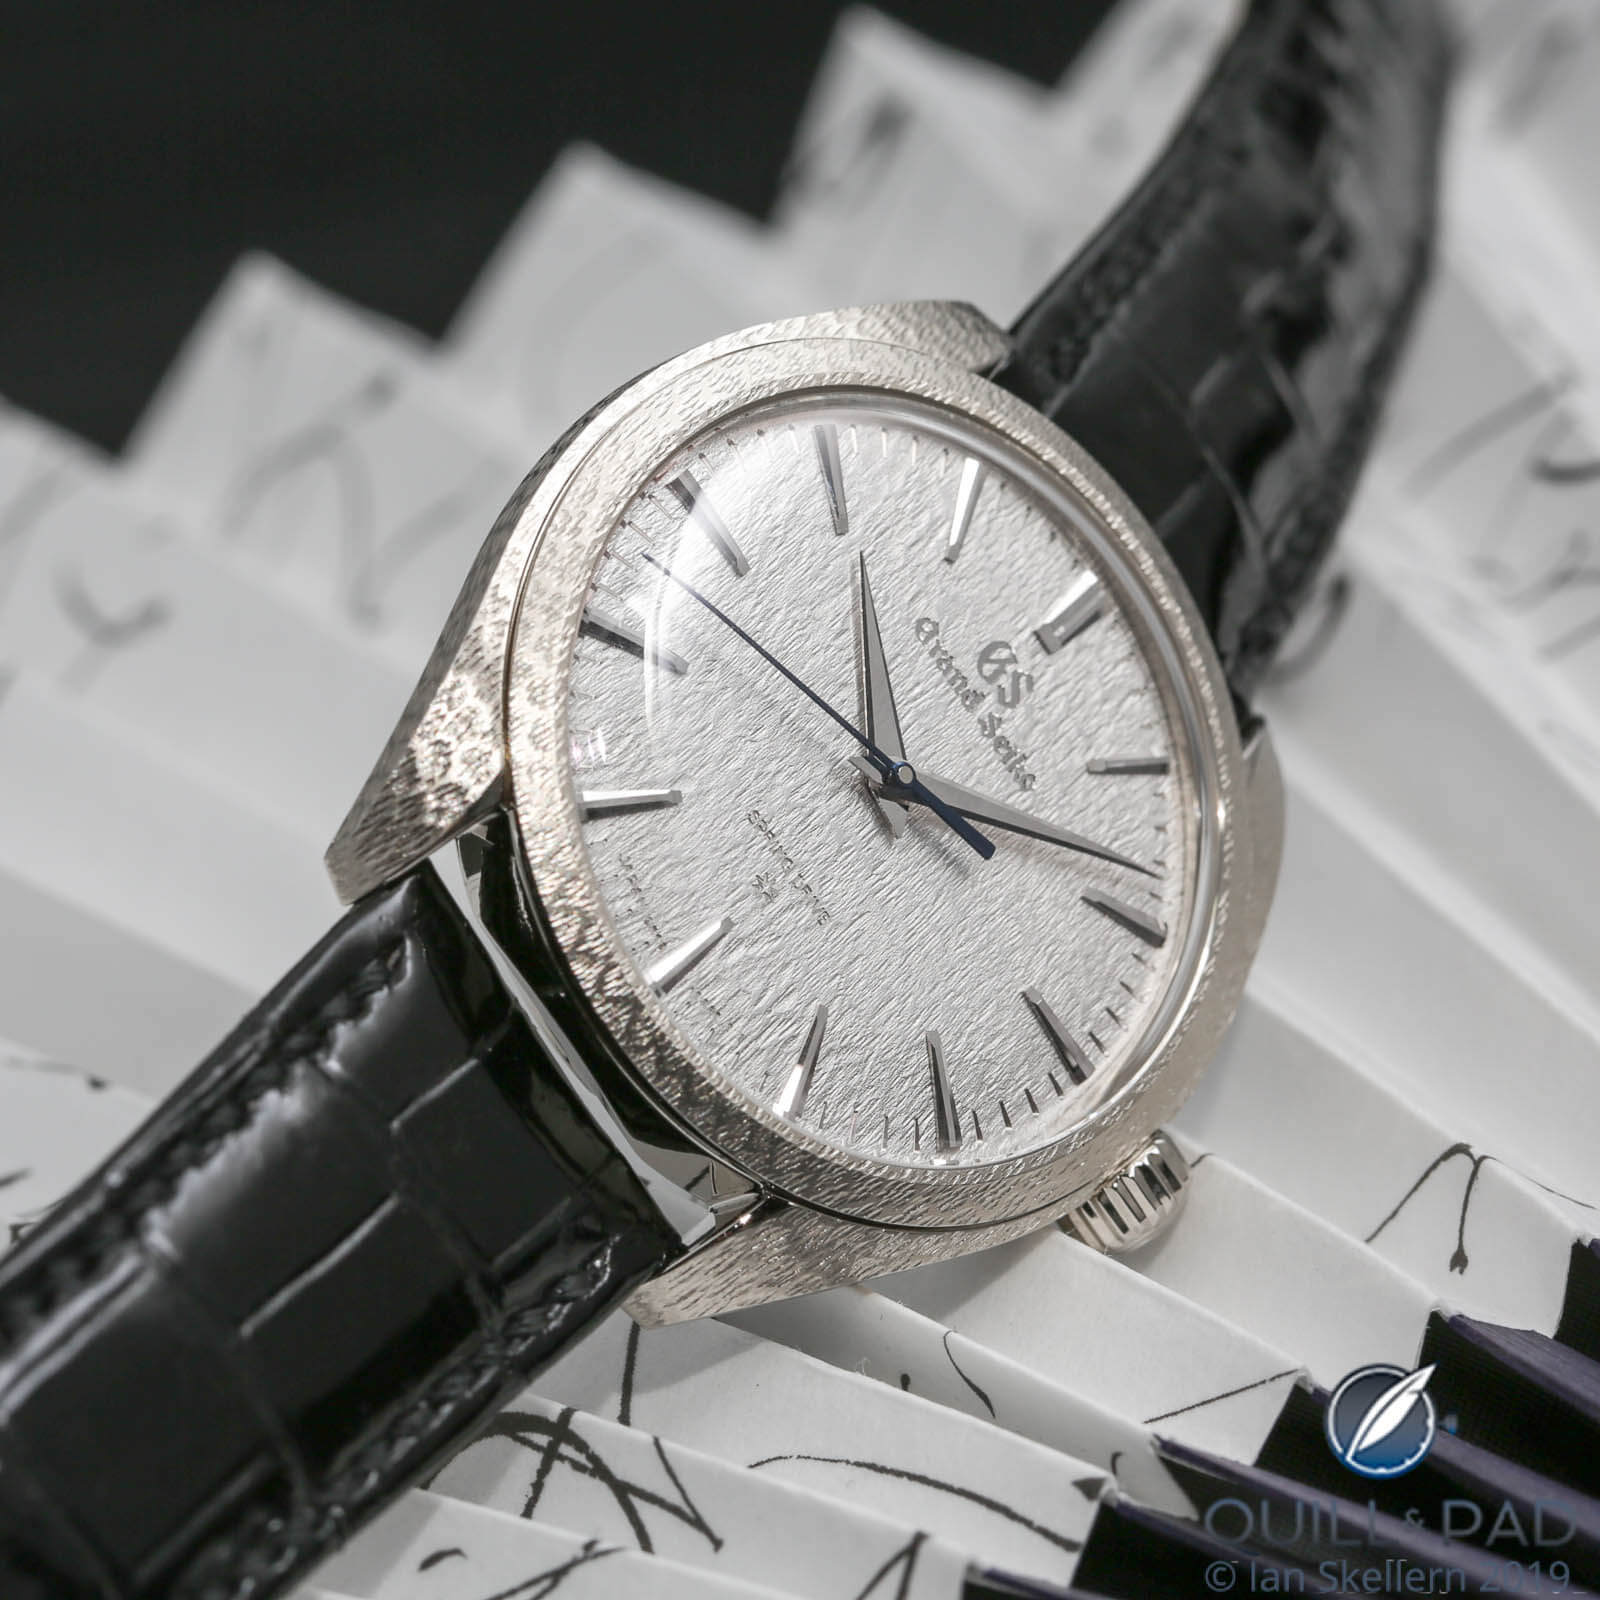 Grand Seiko Spring Drive Manual Wind Elegance collection